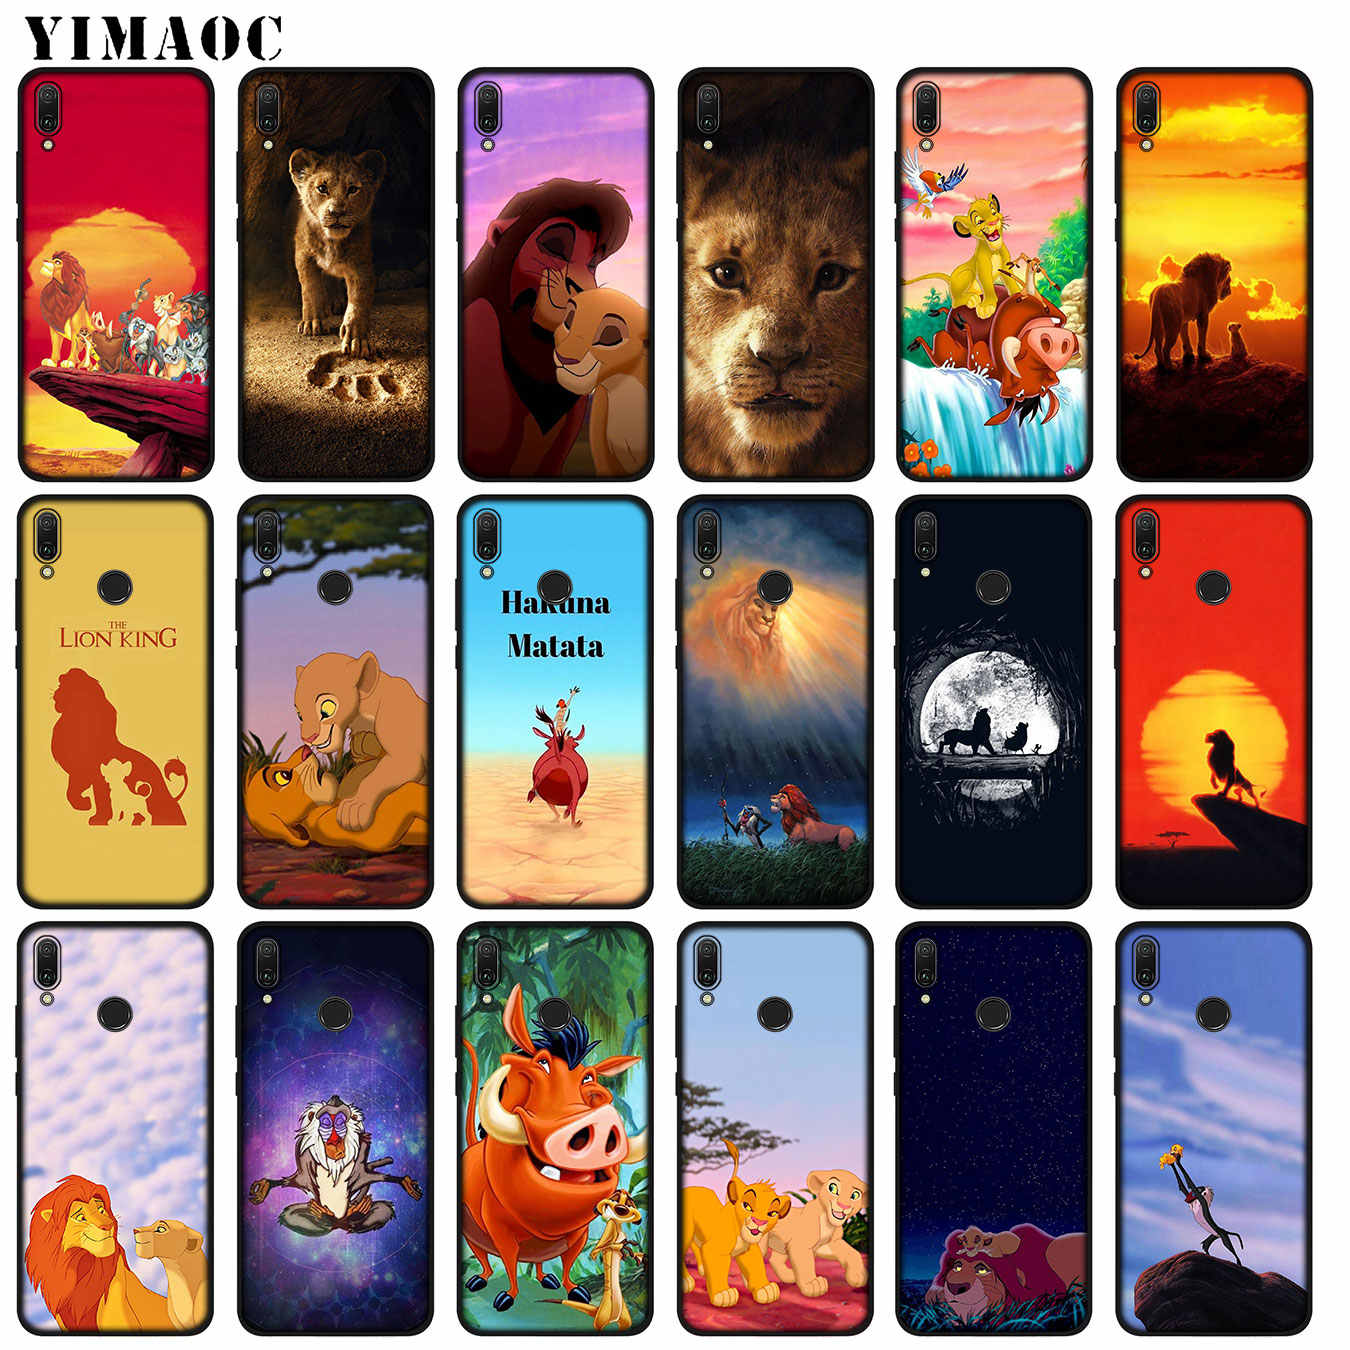 Cartoon The lion king pig Anime Soft Silicone Case for Huawei P30 P20 Pro P10 P9 Lite Mini 2017 2016 Black Cover P Smart Z 2019